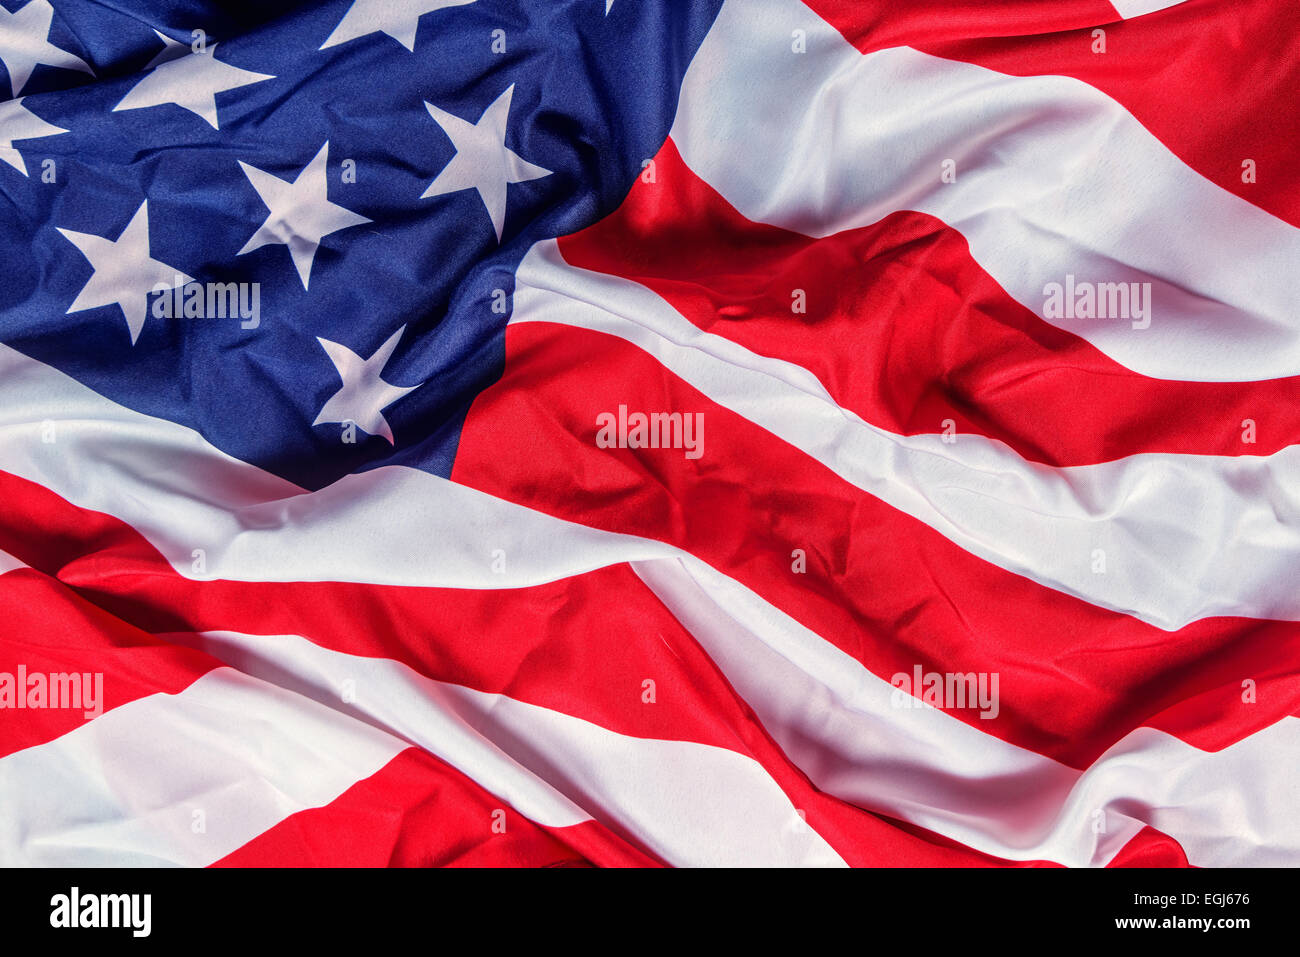 rumpled american flag close up - Stock Image